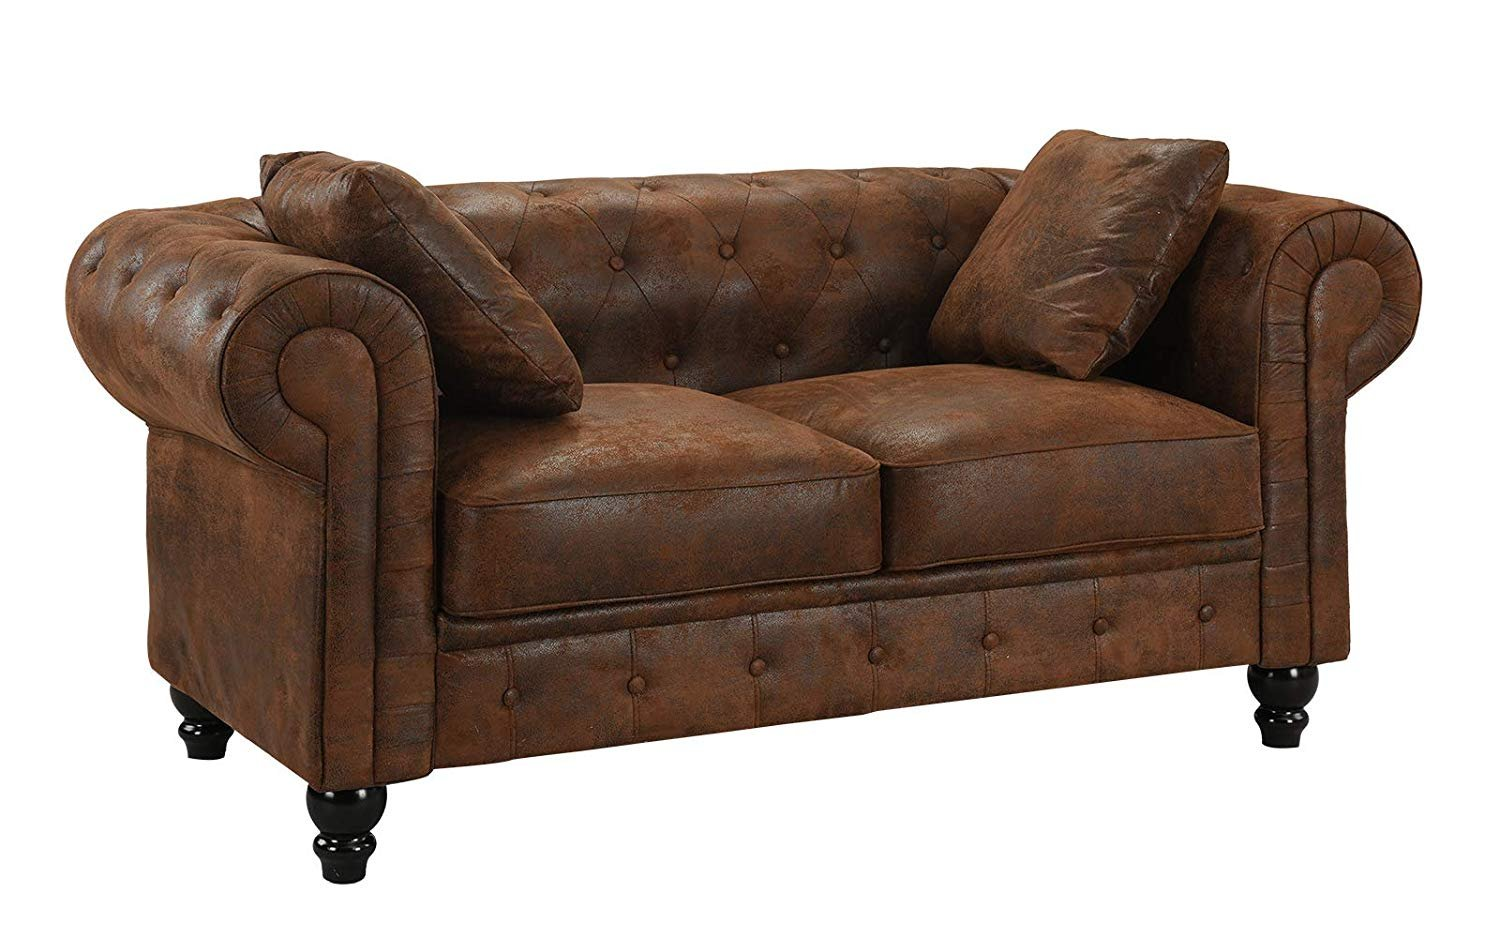 Excellent Details About Large Loveseat Chesterfield Sofa In Tufted Faux Suede Love Seat Couch Dark Brown Ncnpc Chair Design For Home Ncnpcorg